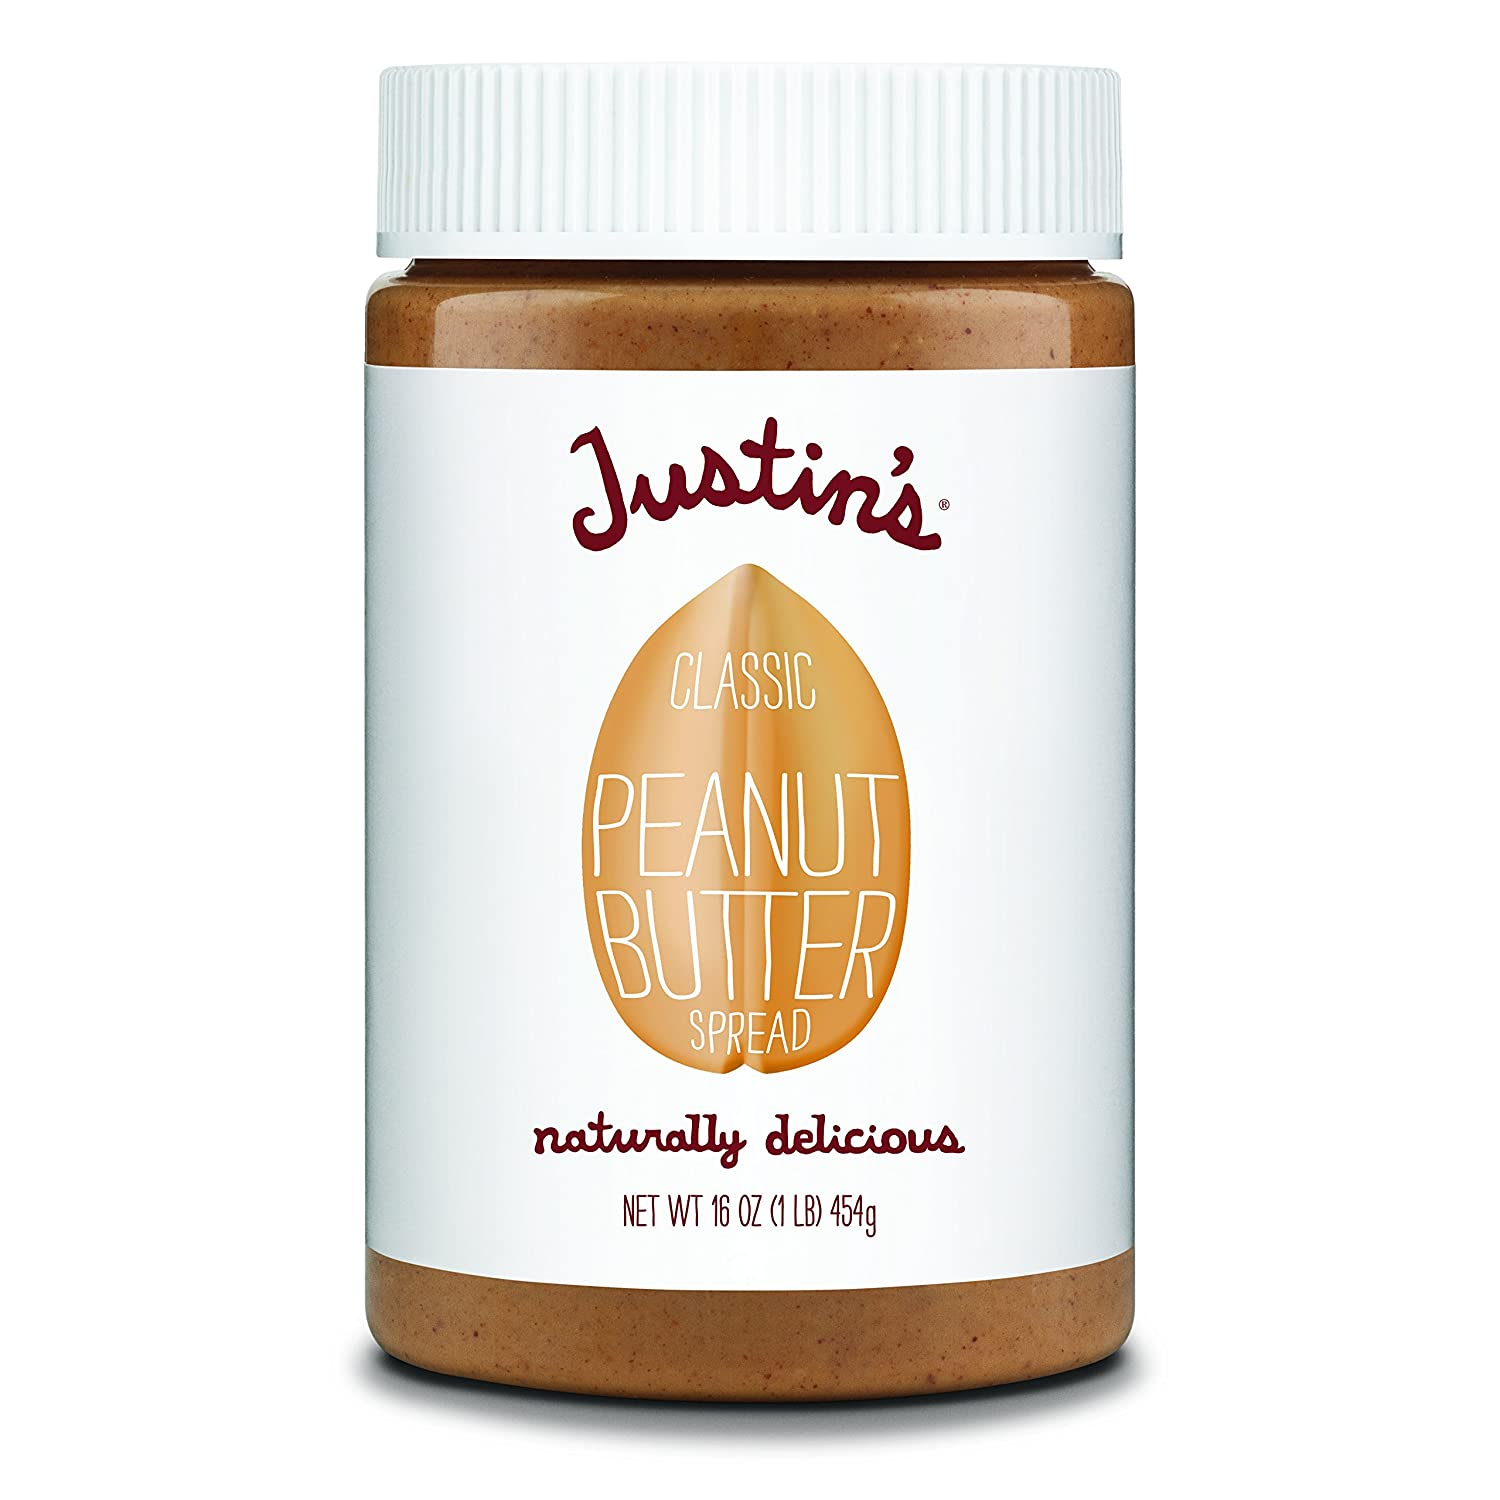 Amazon.com : Classic Peanut Butter by Justins, Only Two Ingredients, No Stir, Gluten-free, Non-GMO, Responsibly Sourced, 12 Jars, 16oz each : Grocery ...